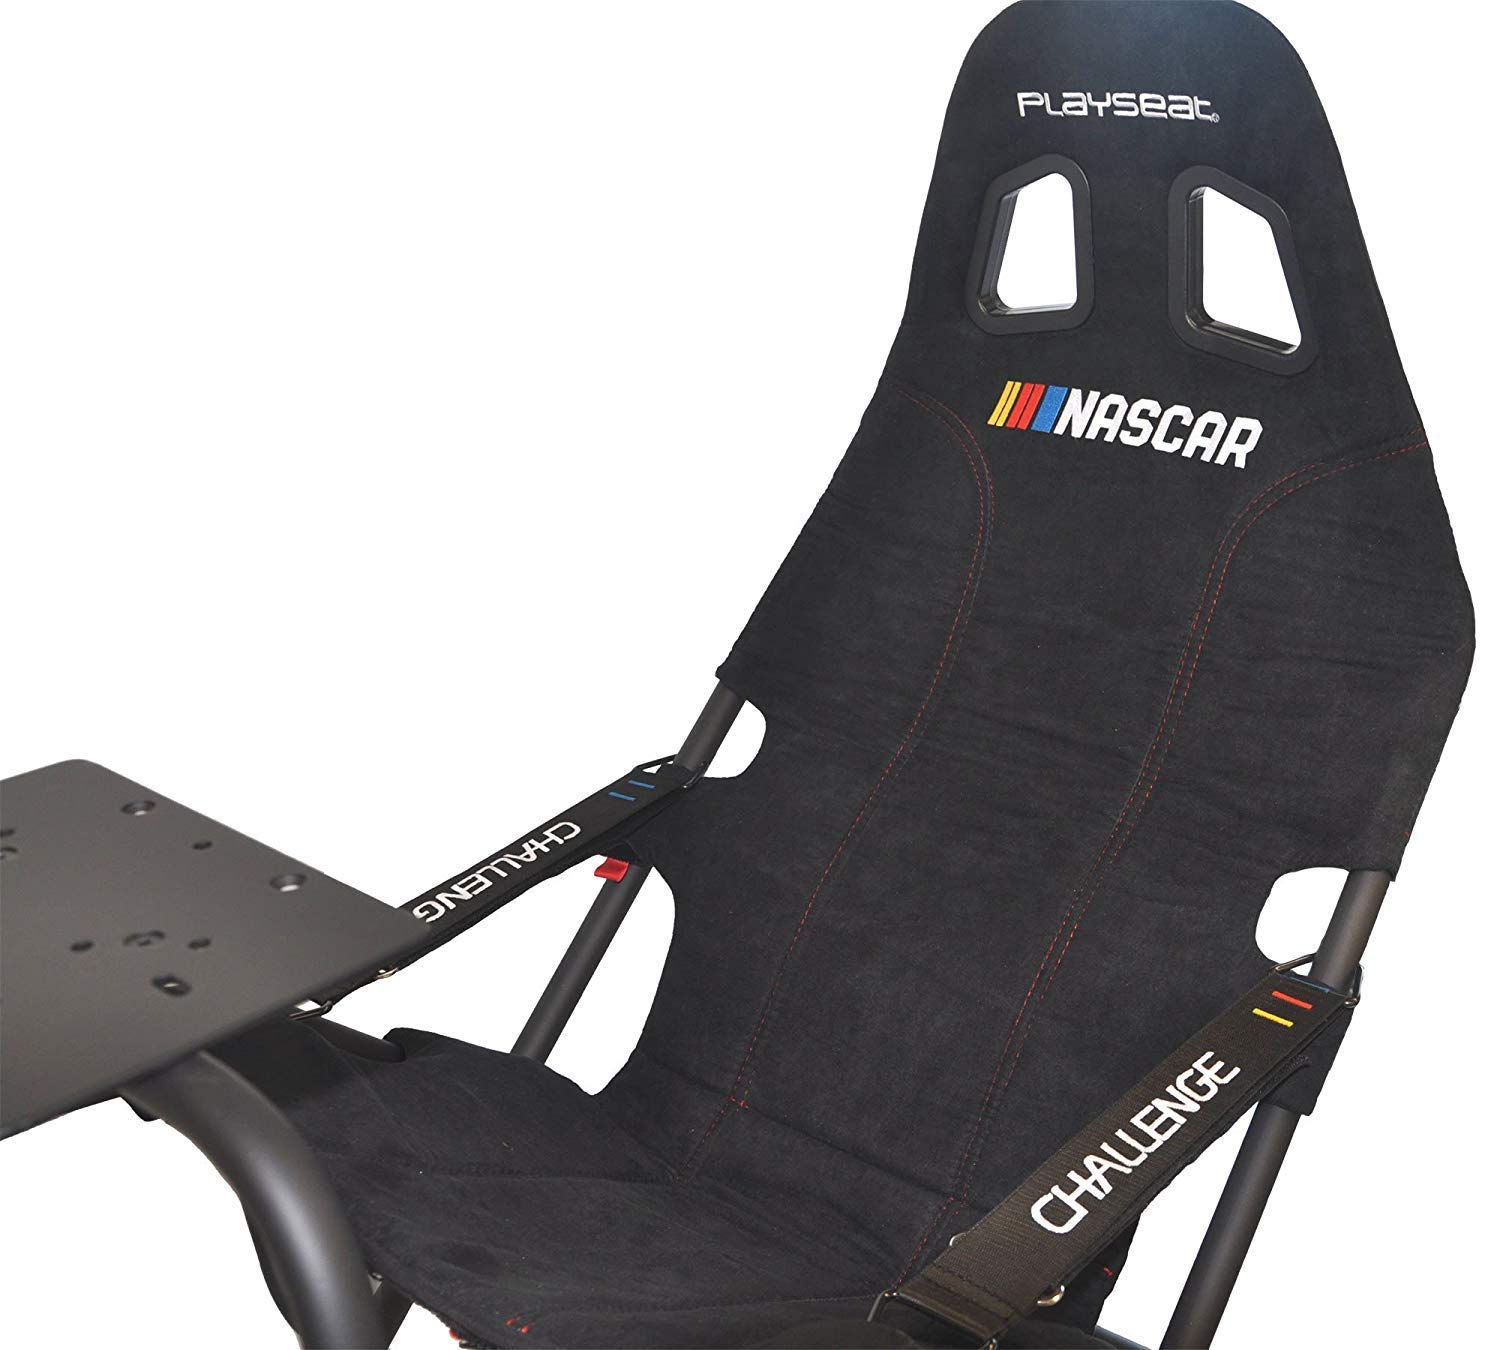 Playseat Challenge NASCAR Edition Racing Video Game Chair For Nintendo XBOX  Playstation CPU Supports Logitech Thrustmaster Fanatec Steering Wheel And